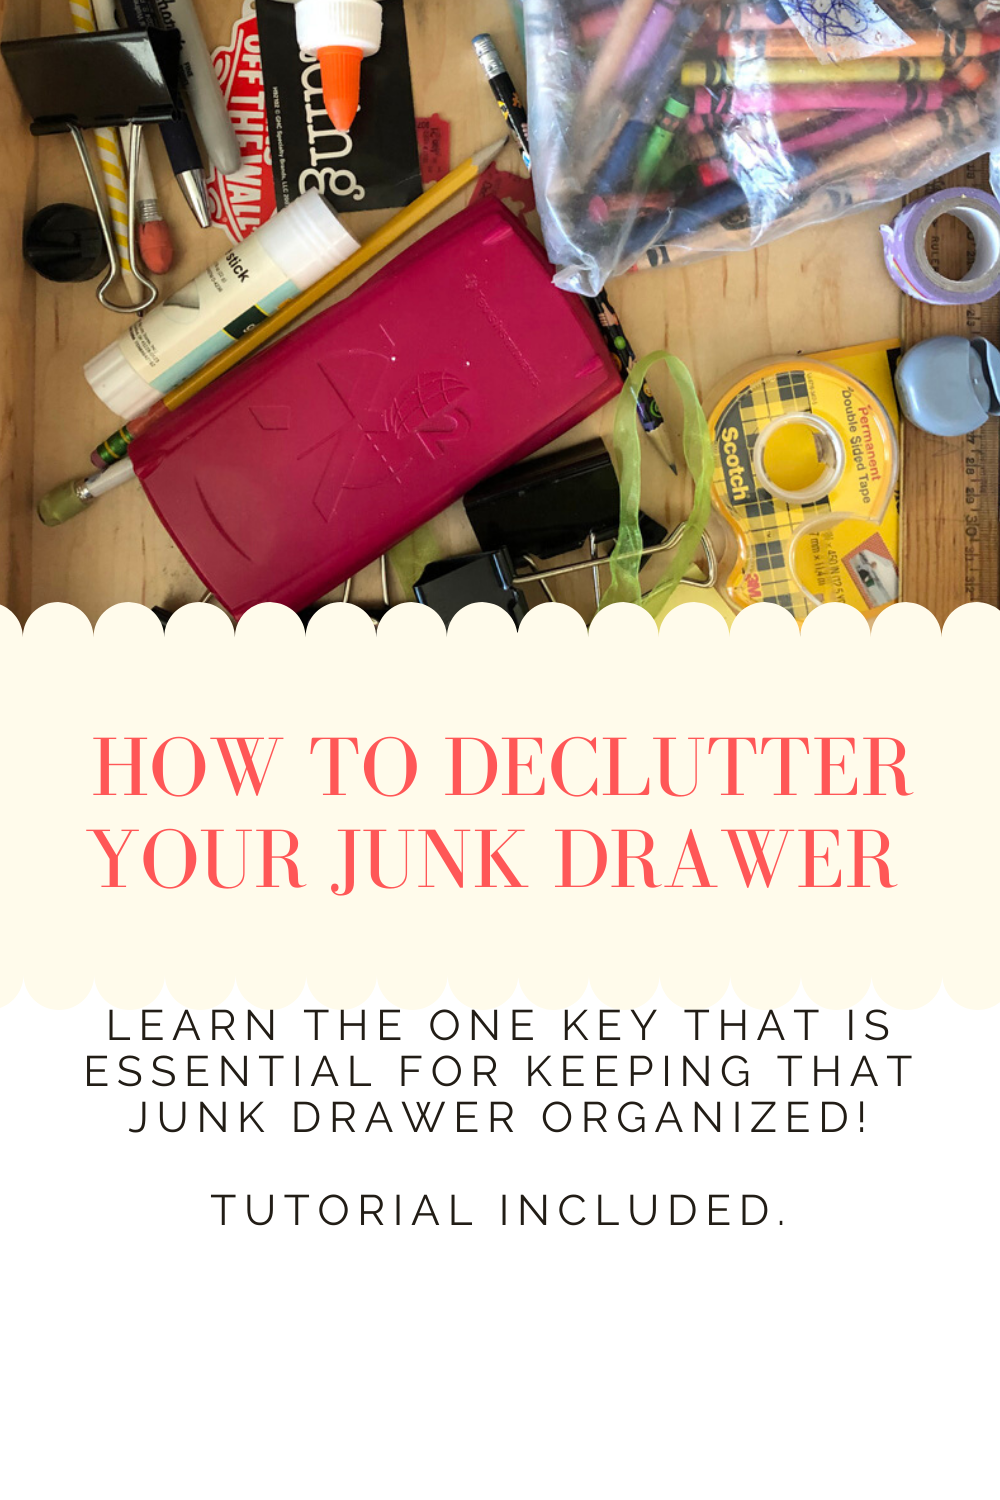 How to Declutter Your Junk Drawer